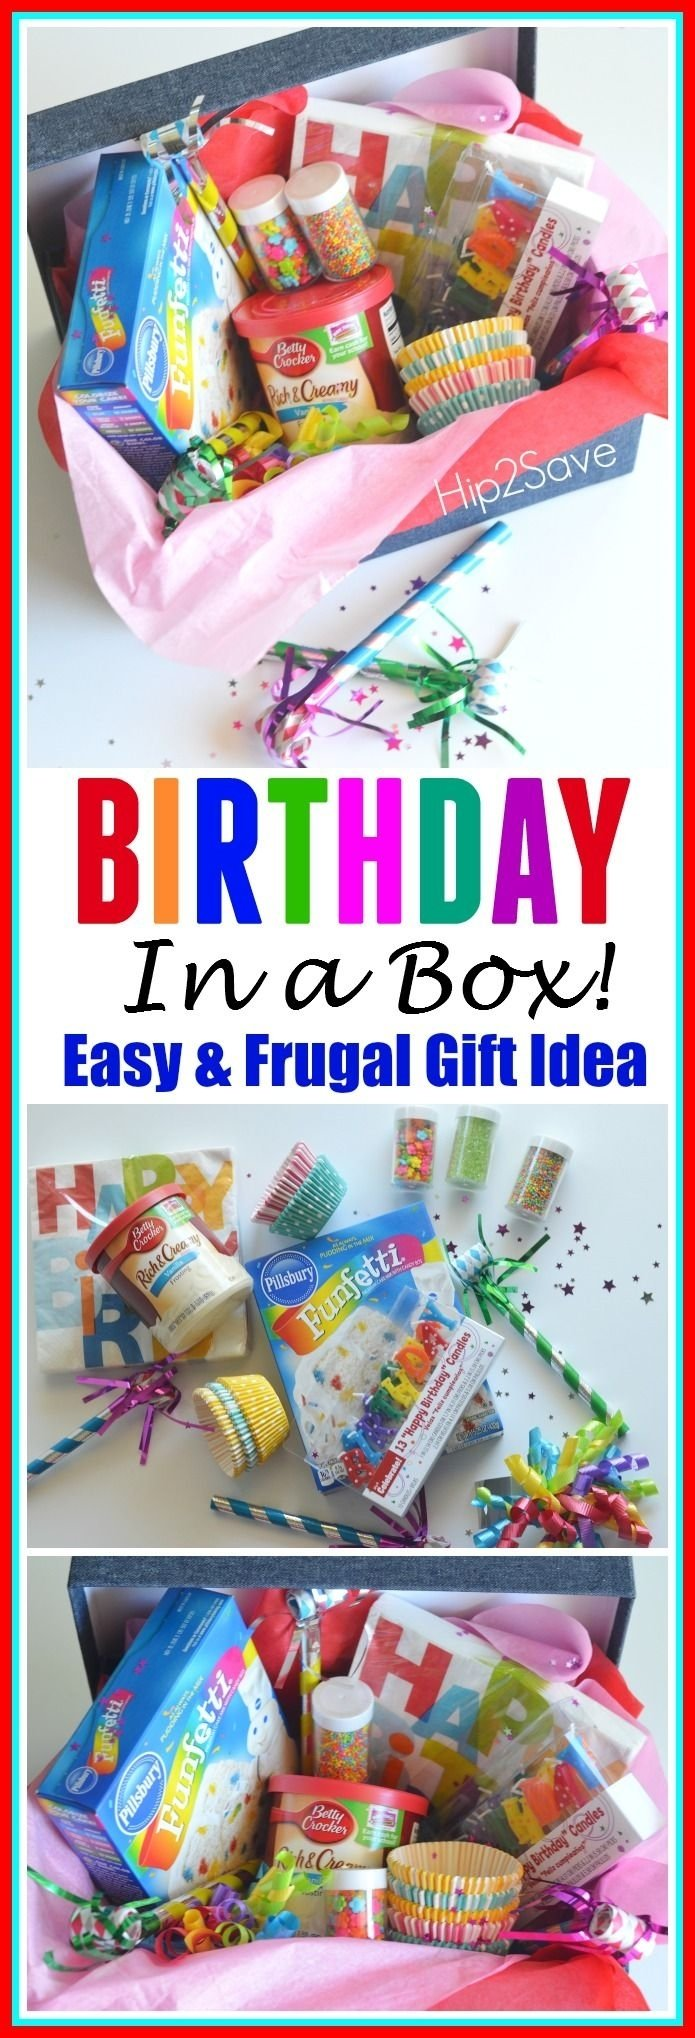 10 Unique Party In A Box Ideas a birthday in a box gift for grandma box birthdays and minis 2020